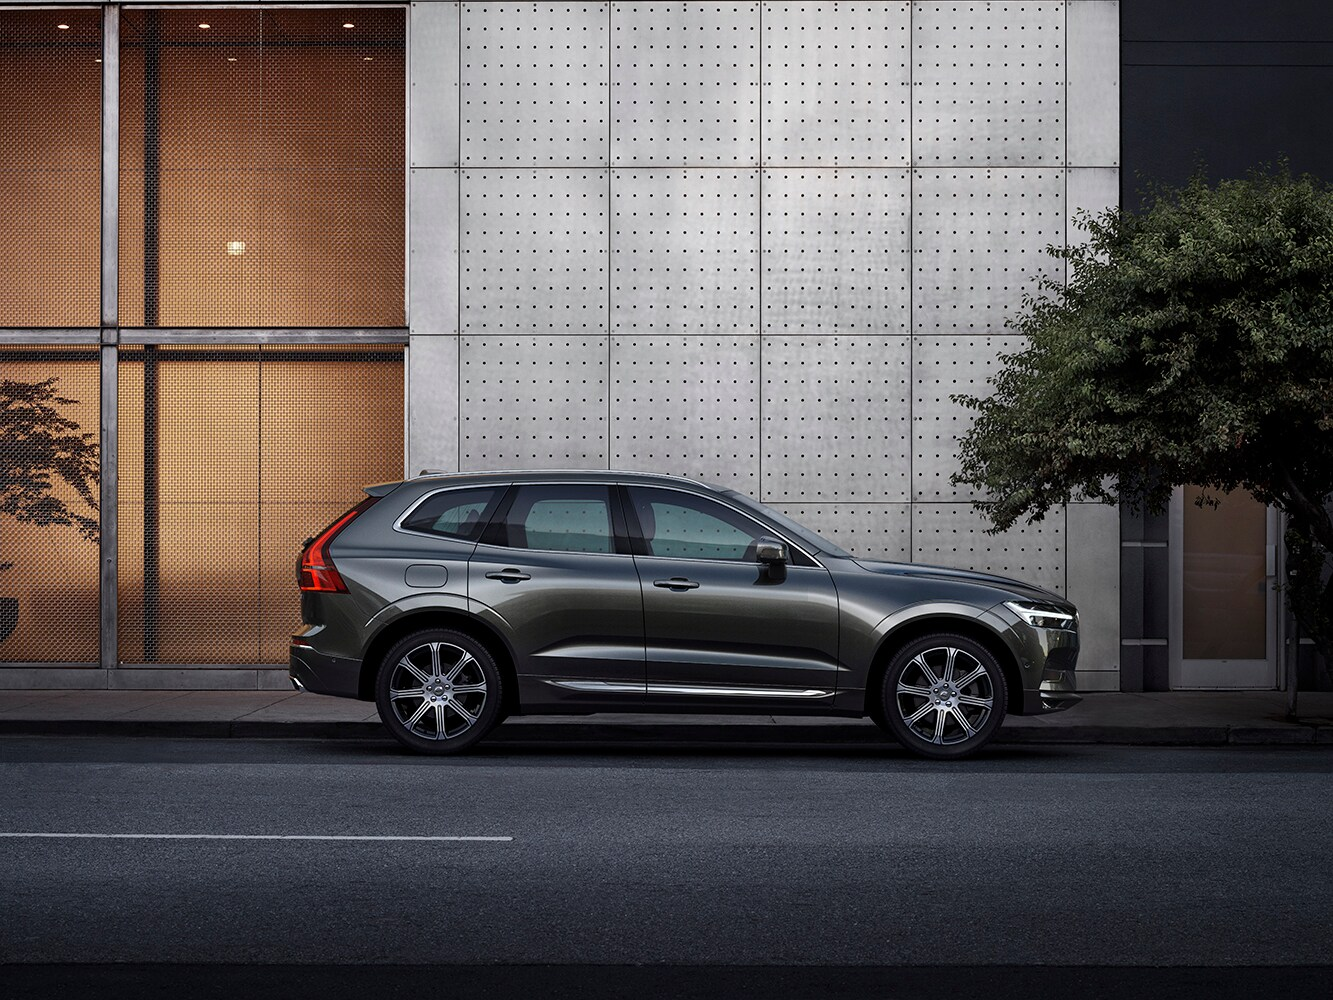 The new Volvo XC60 parked on a city street, available in two trim variants